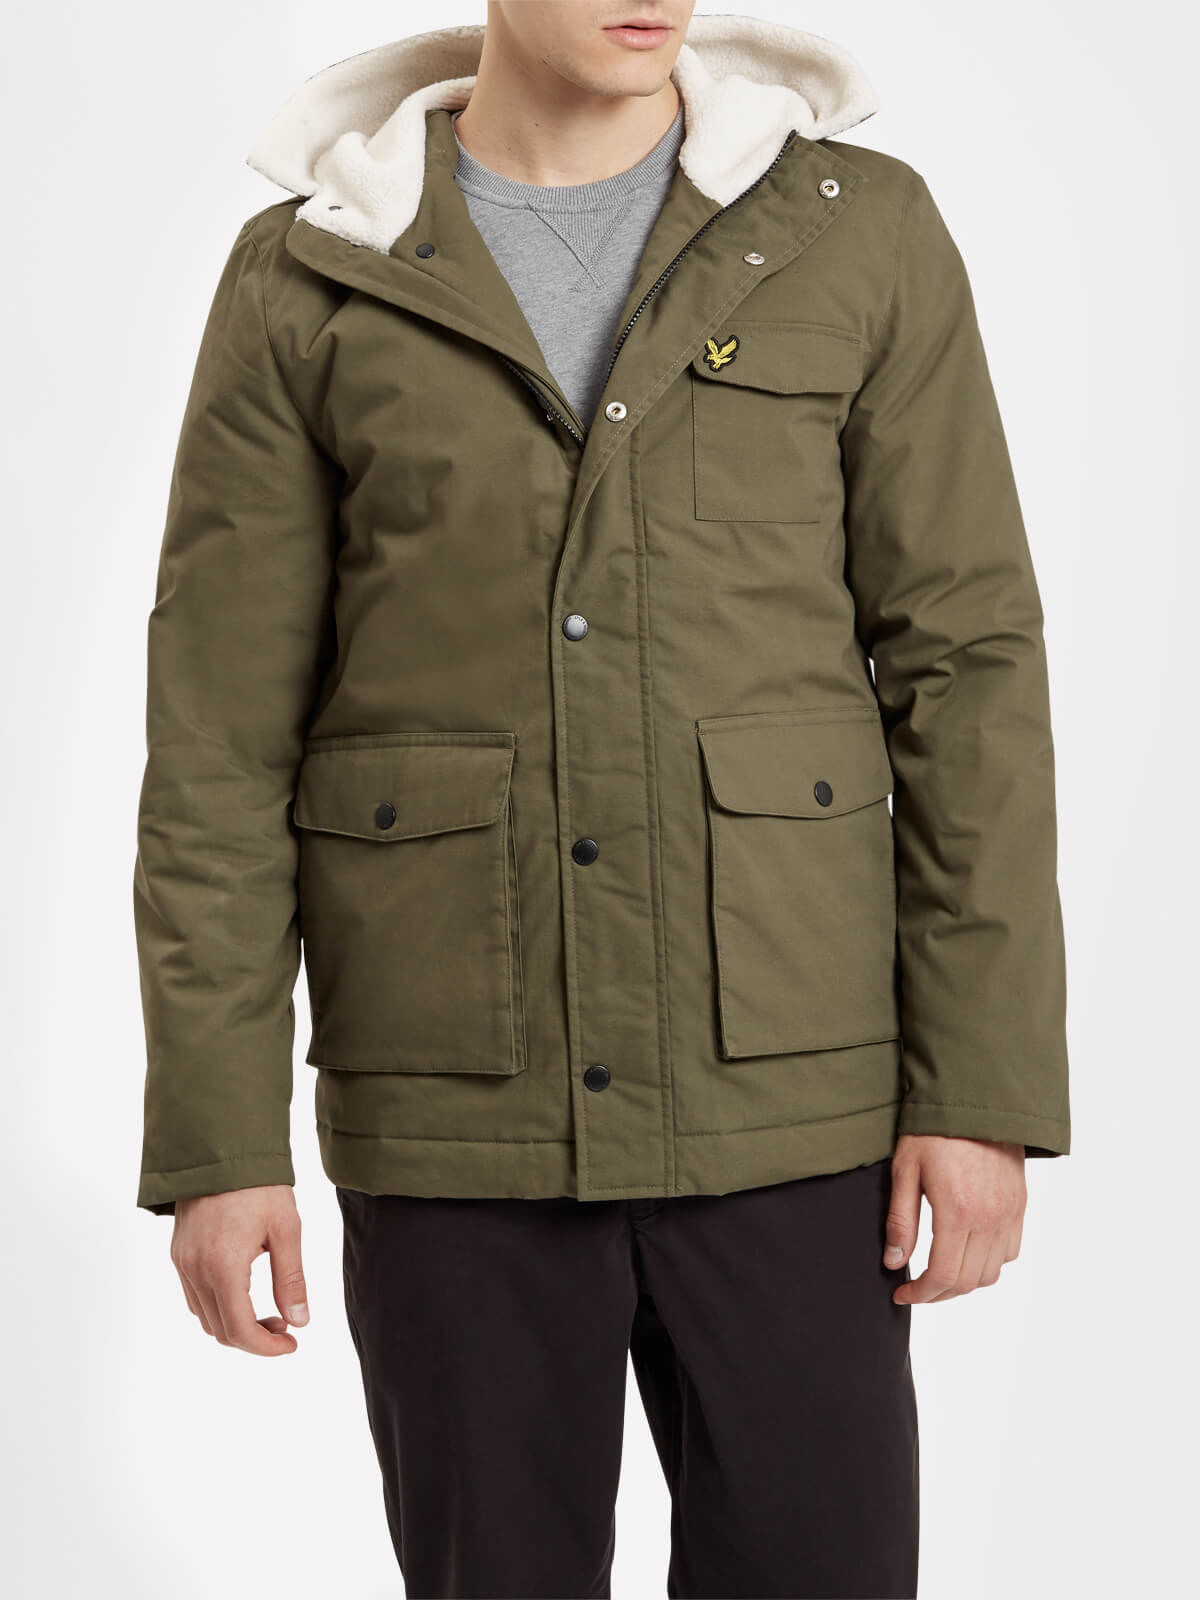 Lyle and Scott Olive Shearling Coat